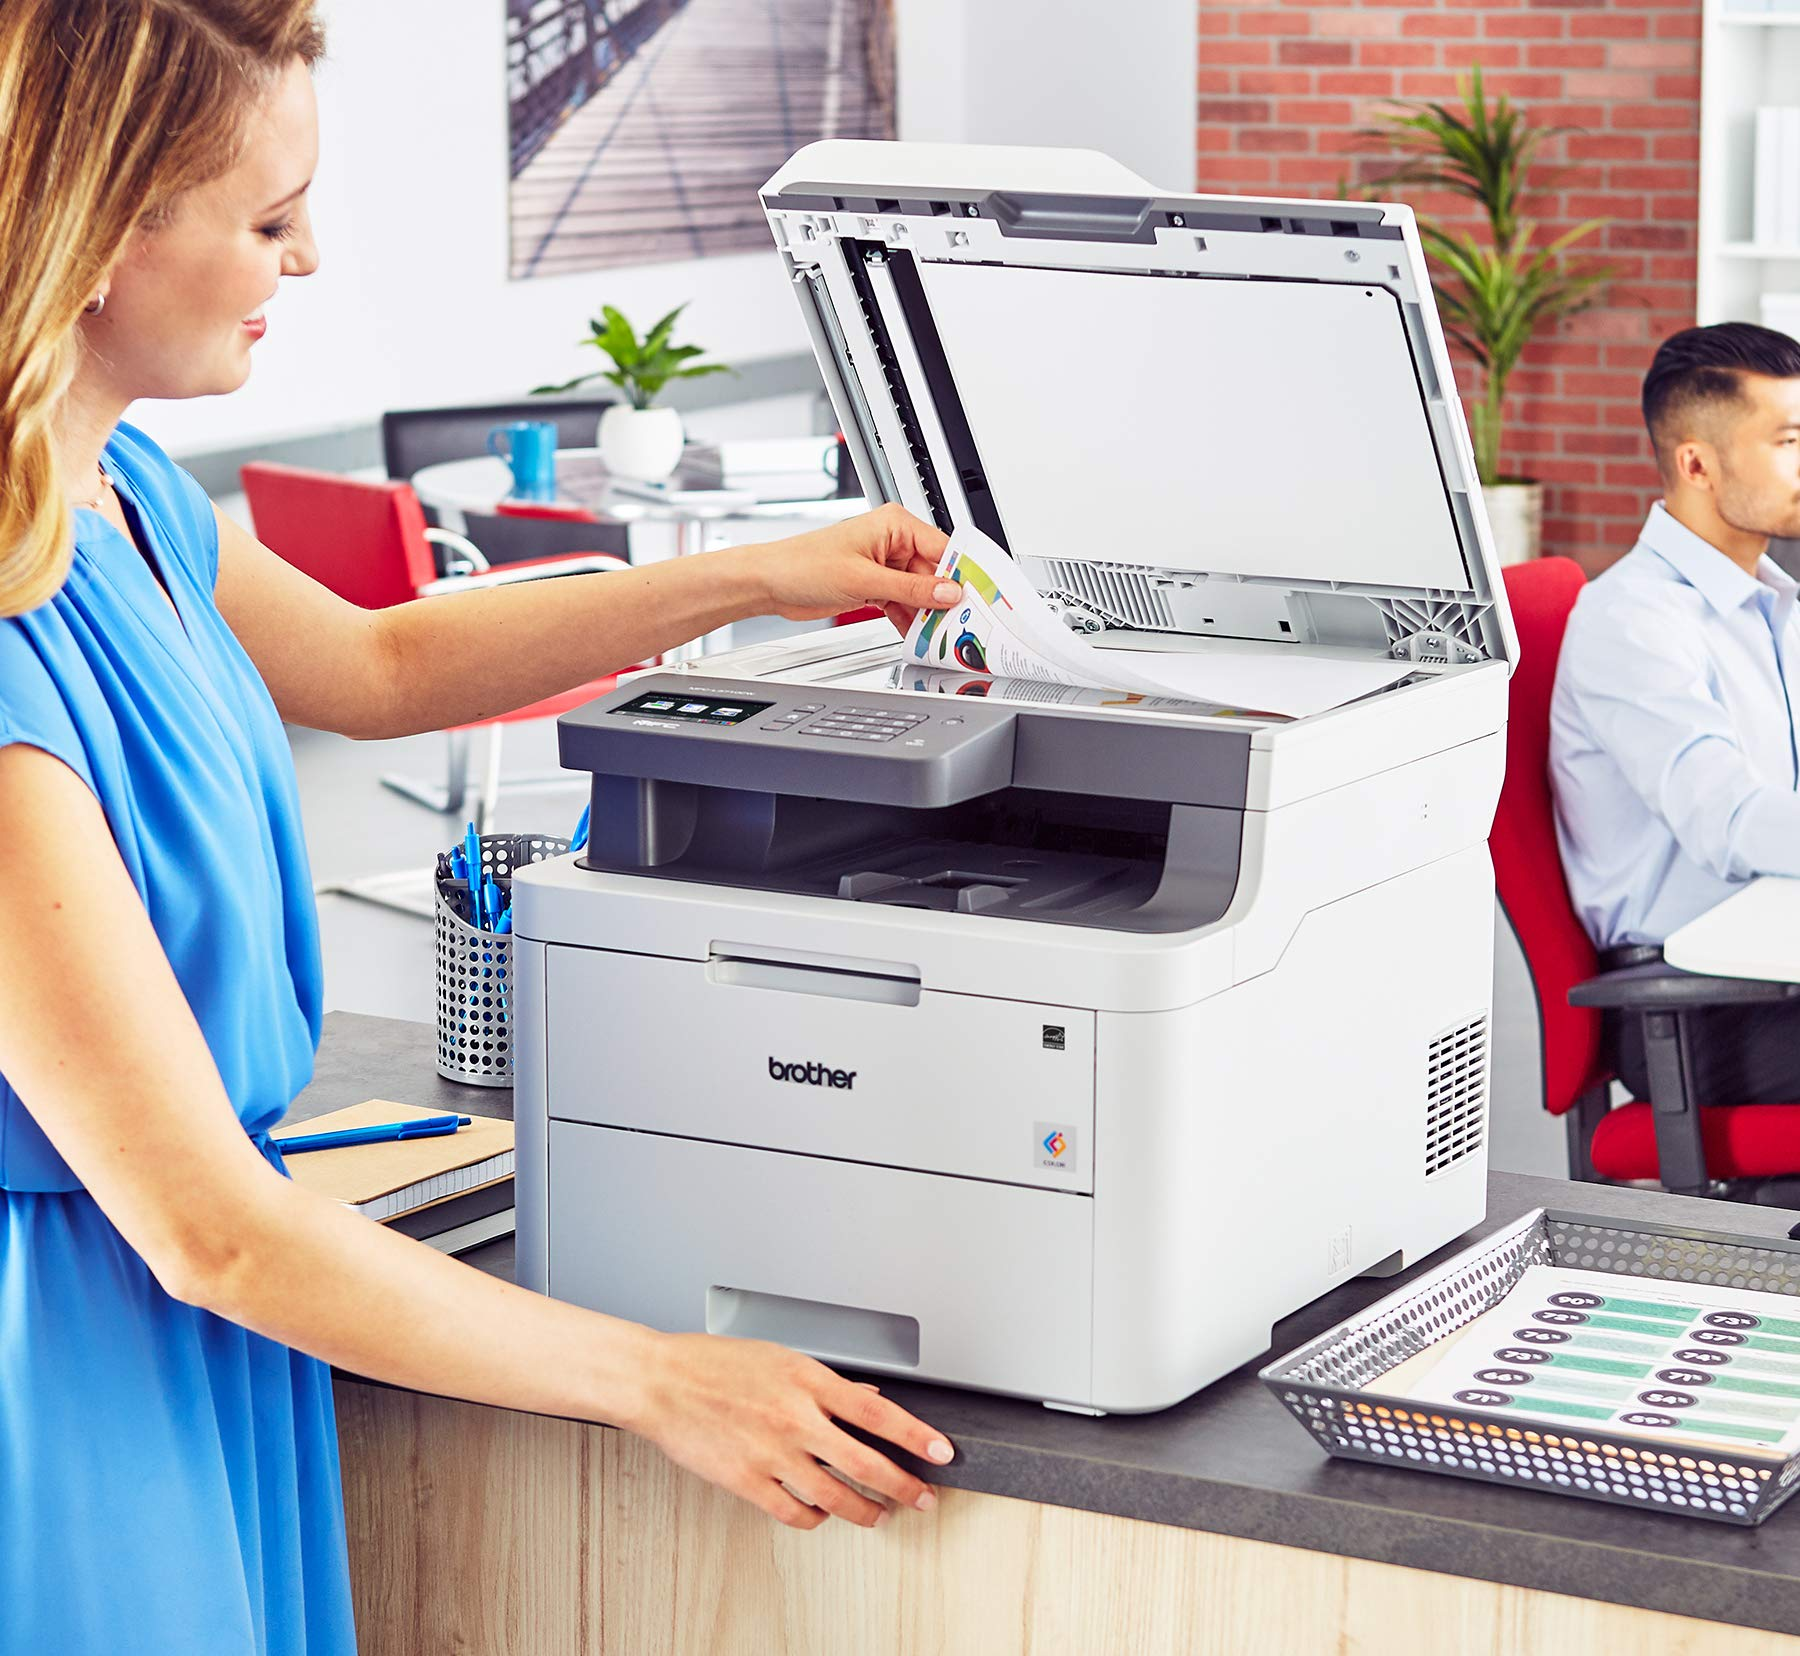 Brother MFC-L3710CW Compact Digital Color All-in-One Printer Providing Laser Printer Quality Results with Wireless, Amazon Dash Replenishment Enabled by Brother (Image #6)